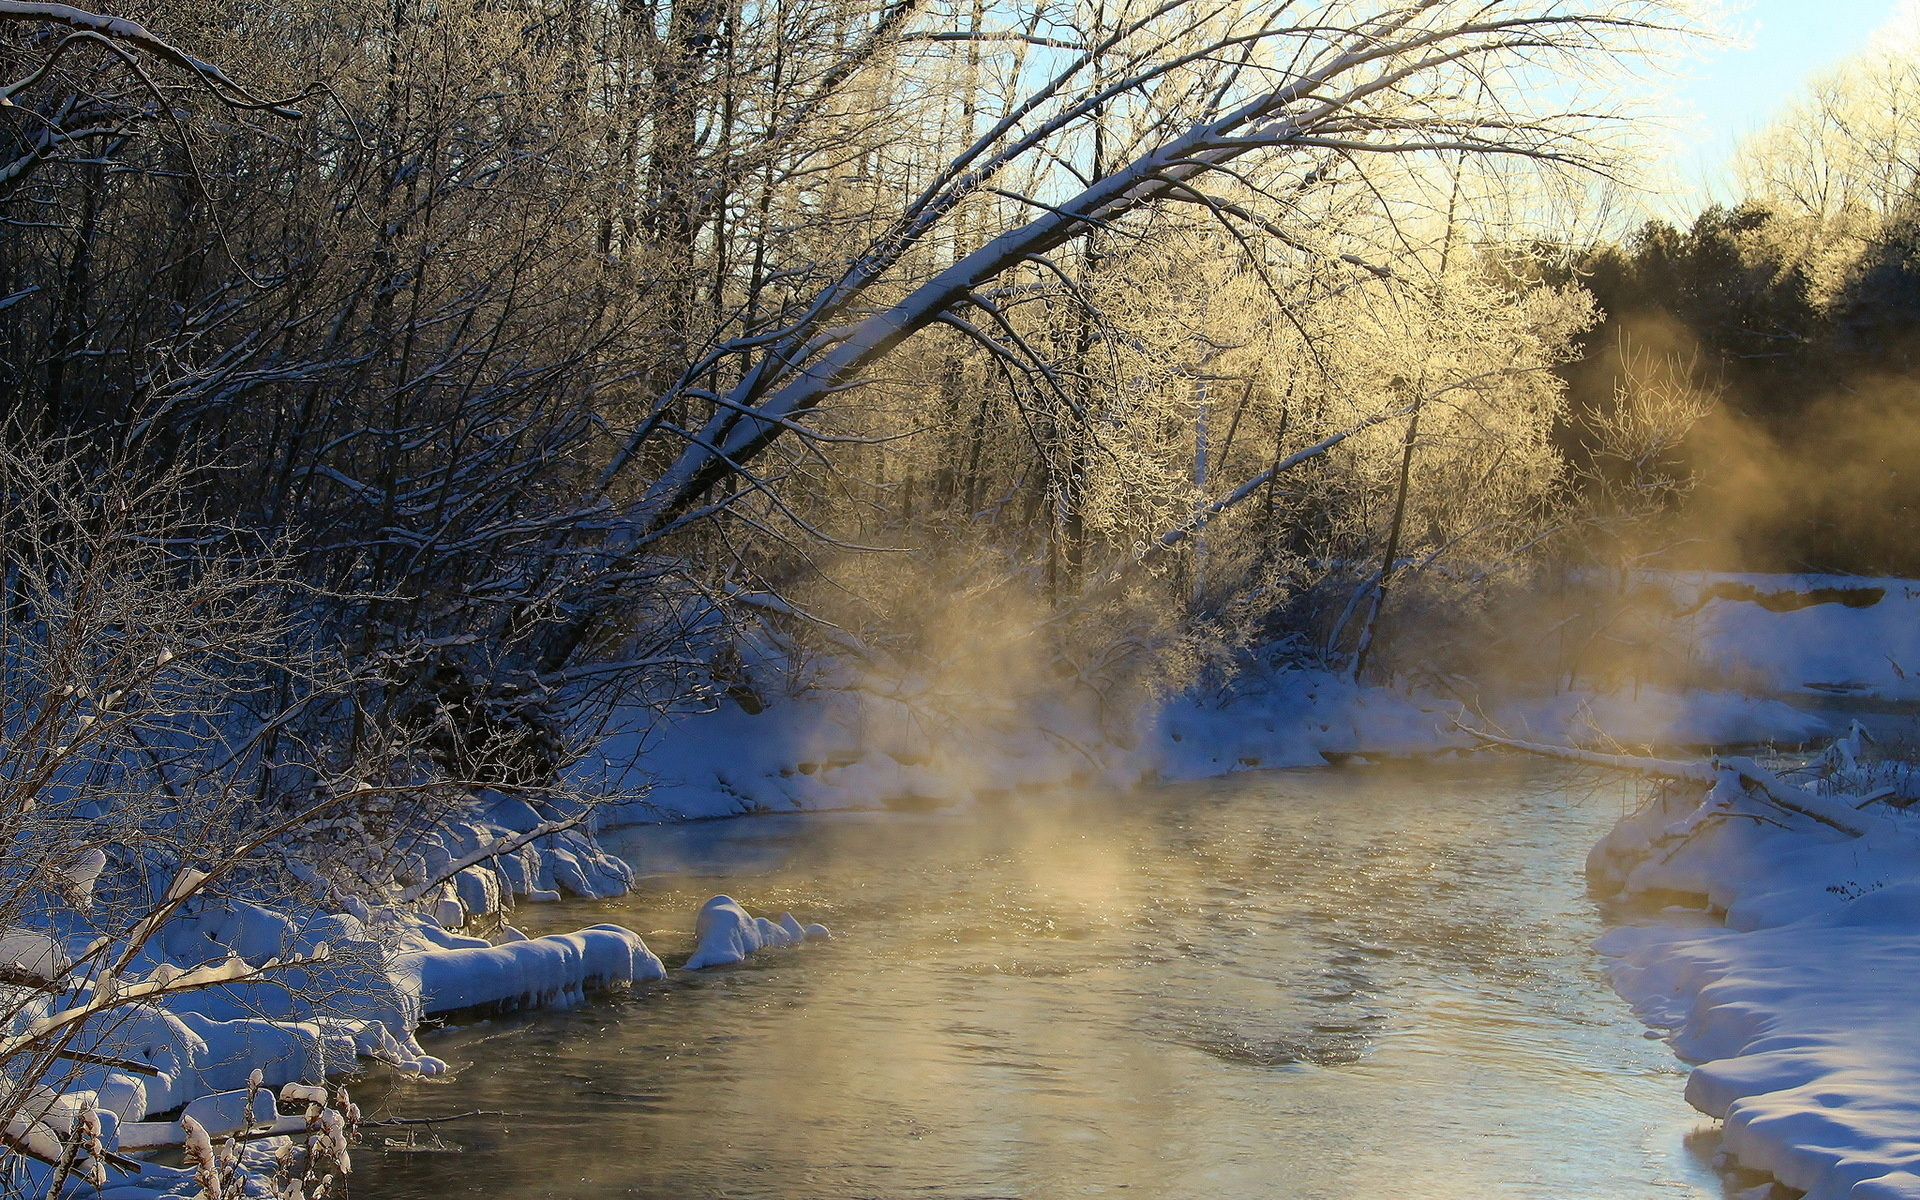 Falling Snow Wallpaper Iphone 5 Mist Fog Nature Landscapes Rivers Stream Sunrise Dawn